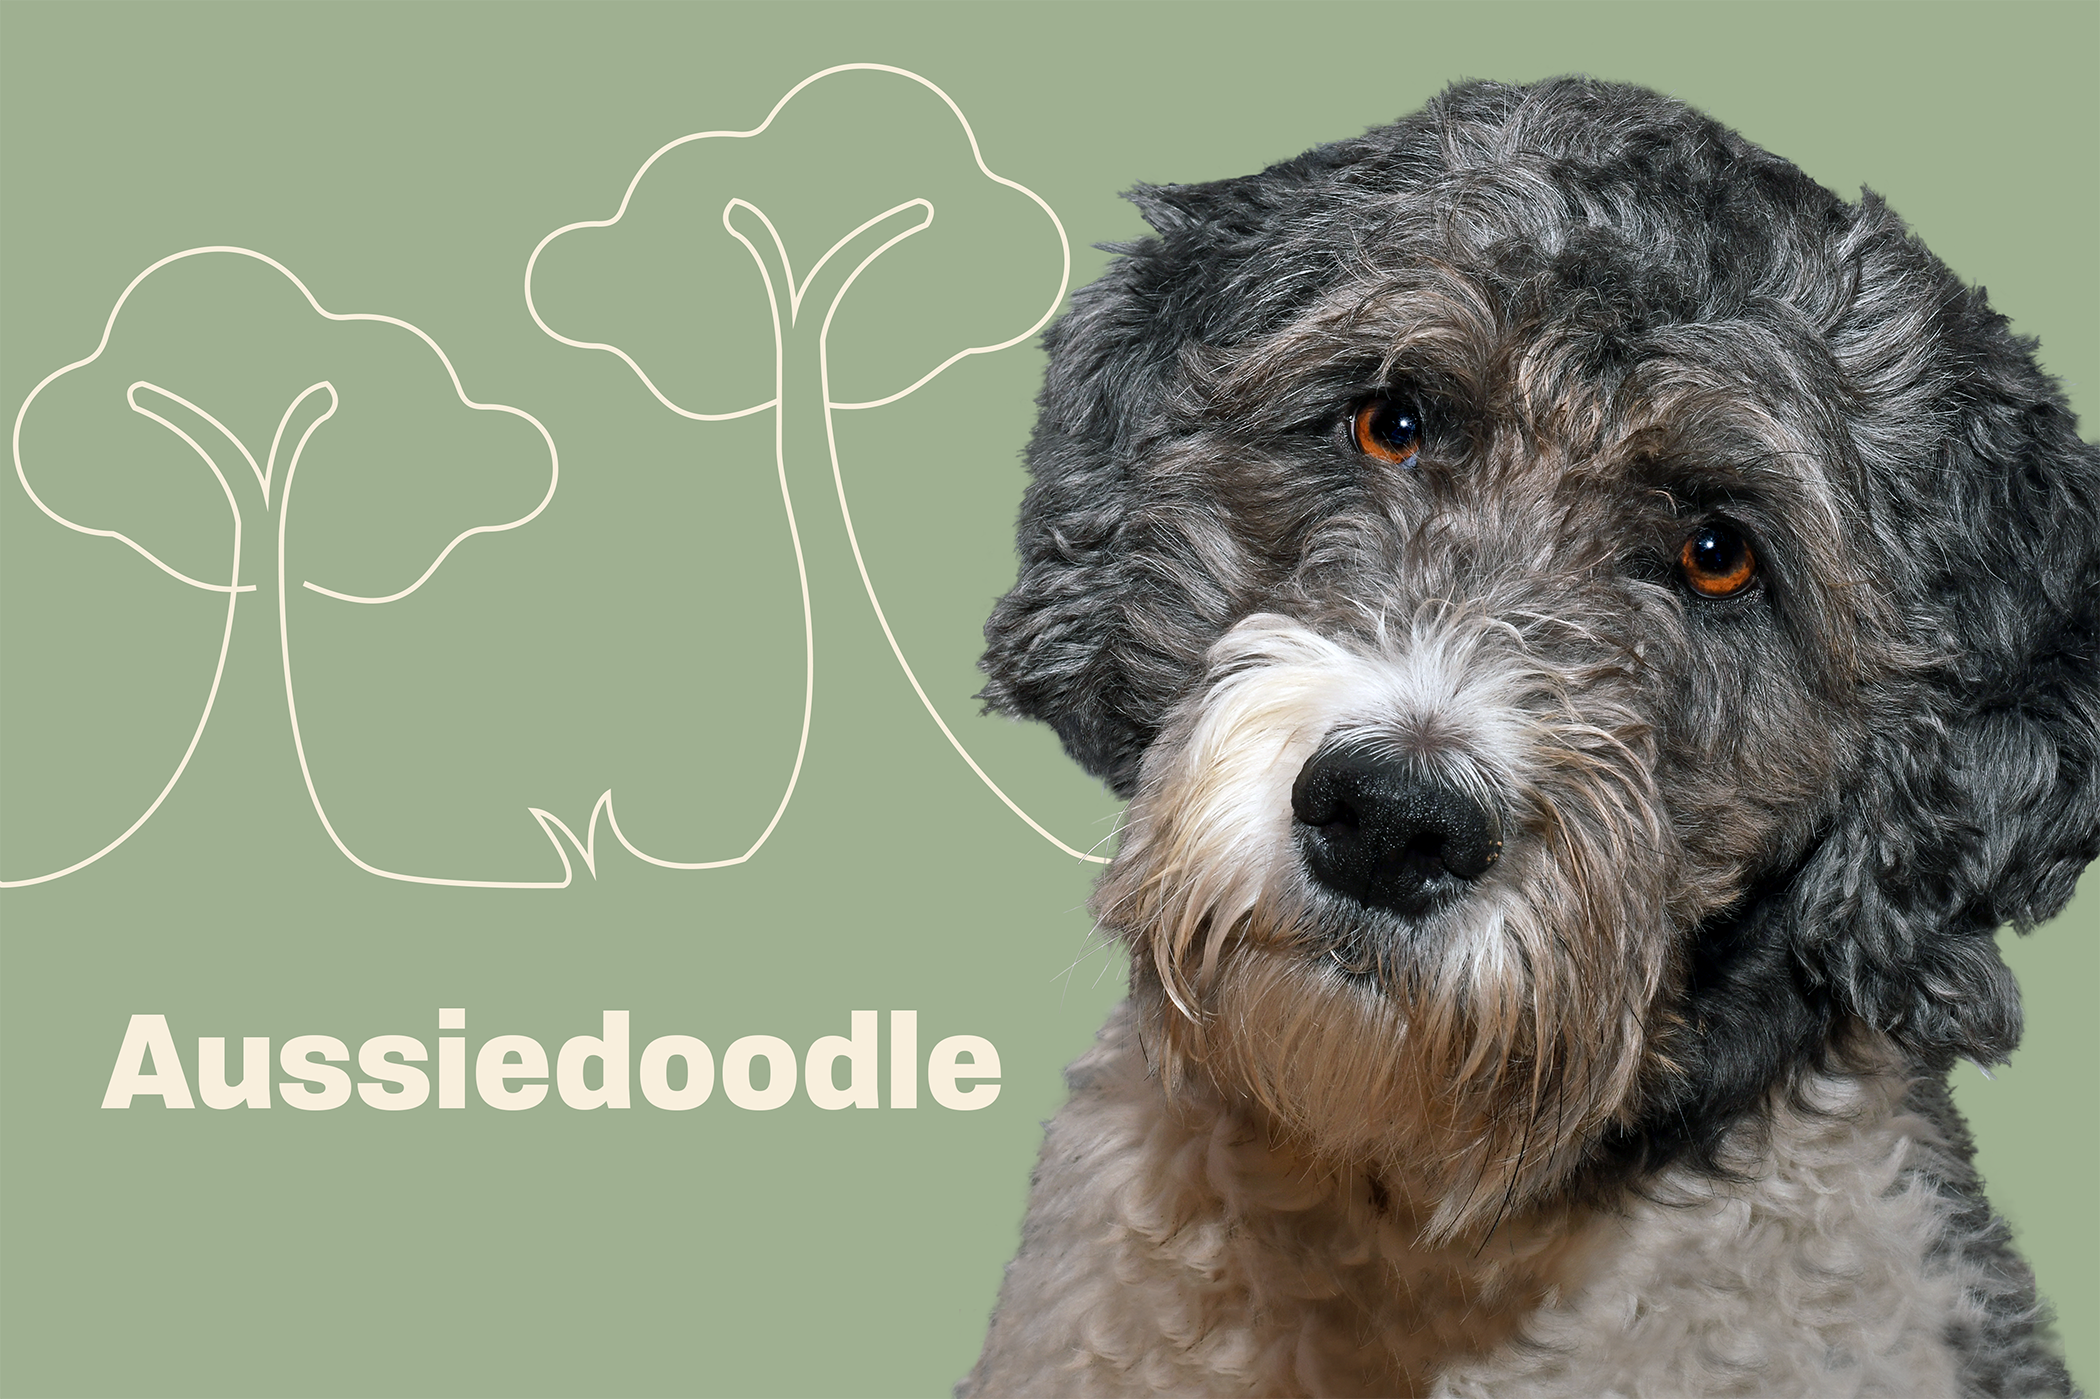 Aussiedoodle portrait with illustrated embellisments